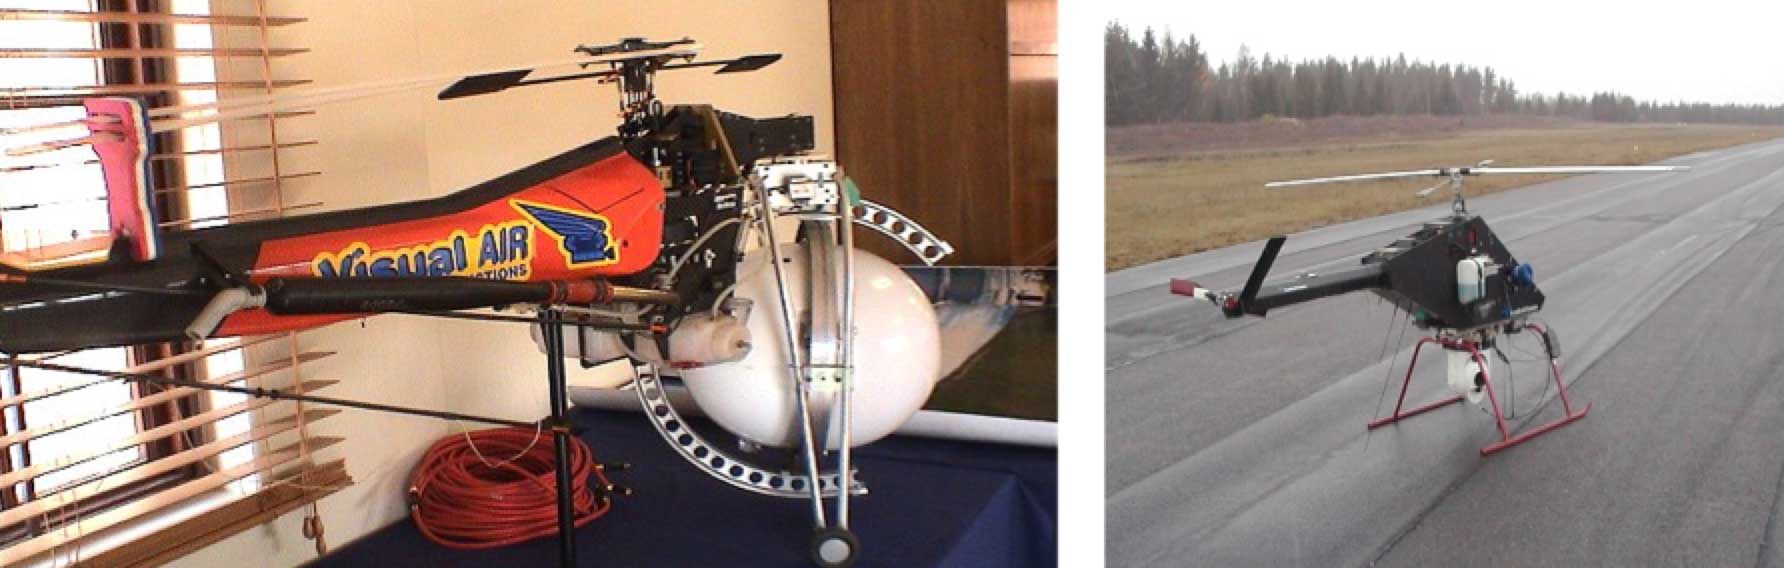 composite insulator Comparison of Methodologies to Detect Damaged Composite Insulators Examples of mini helicopters